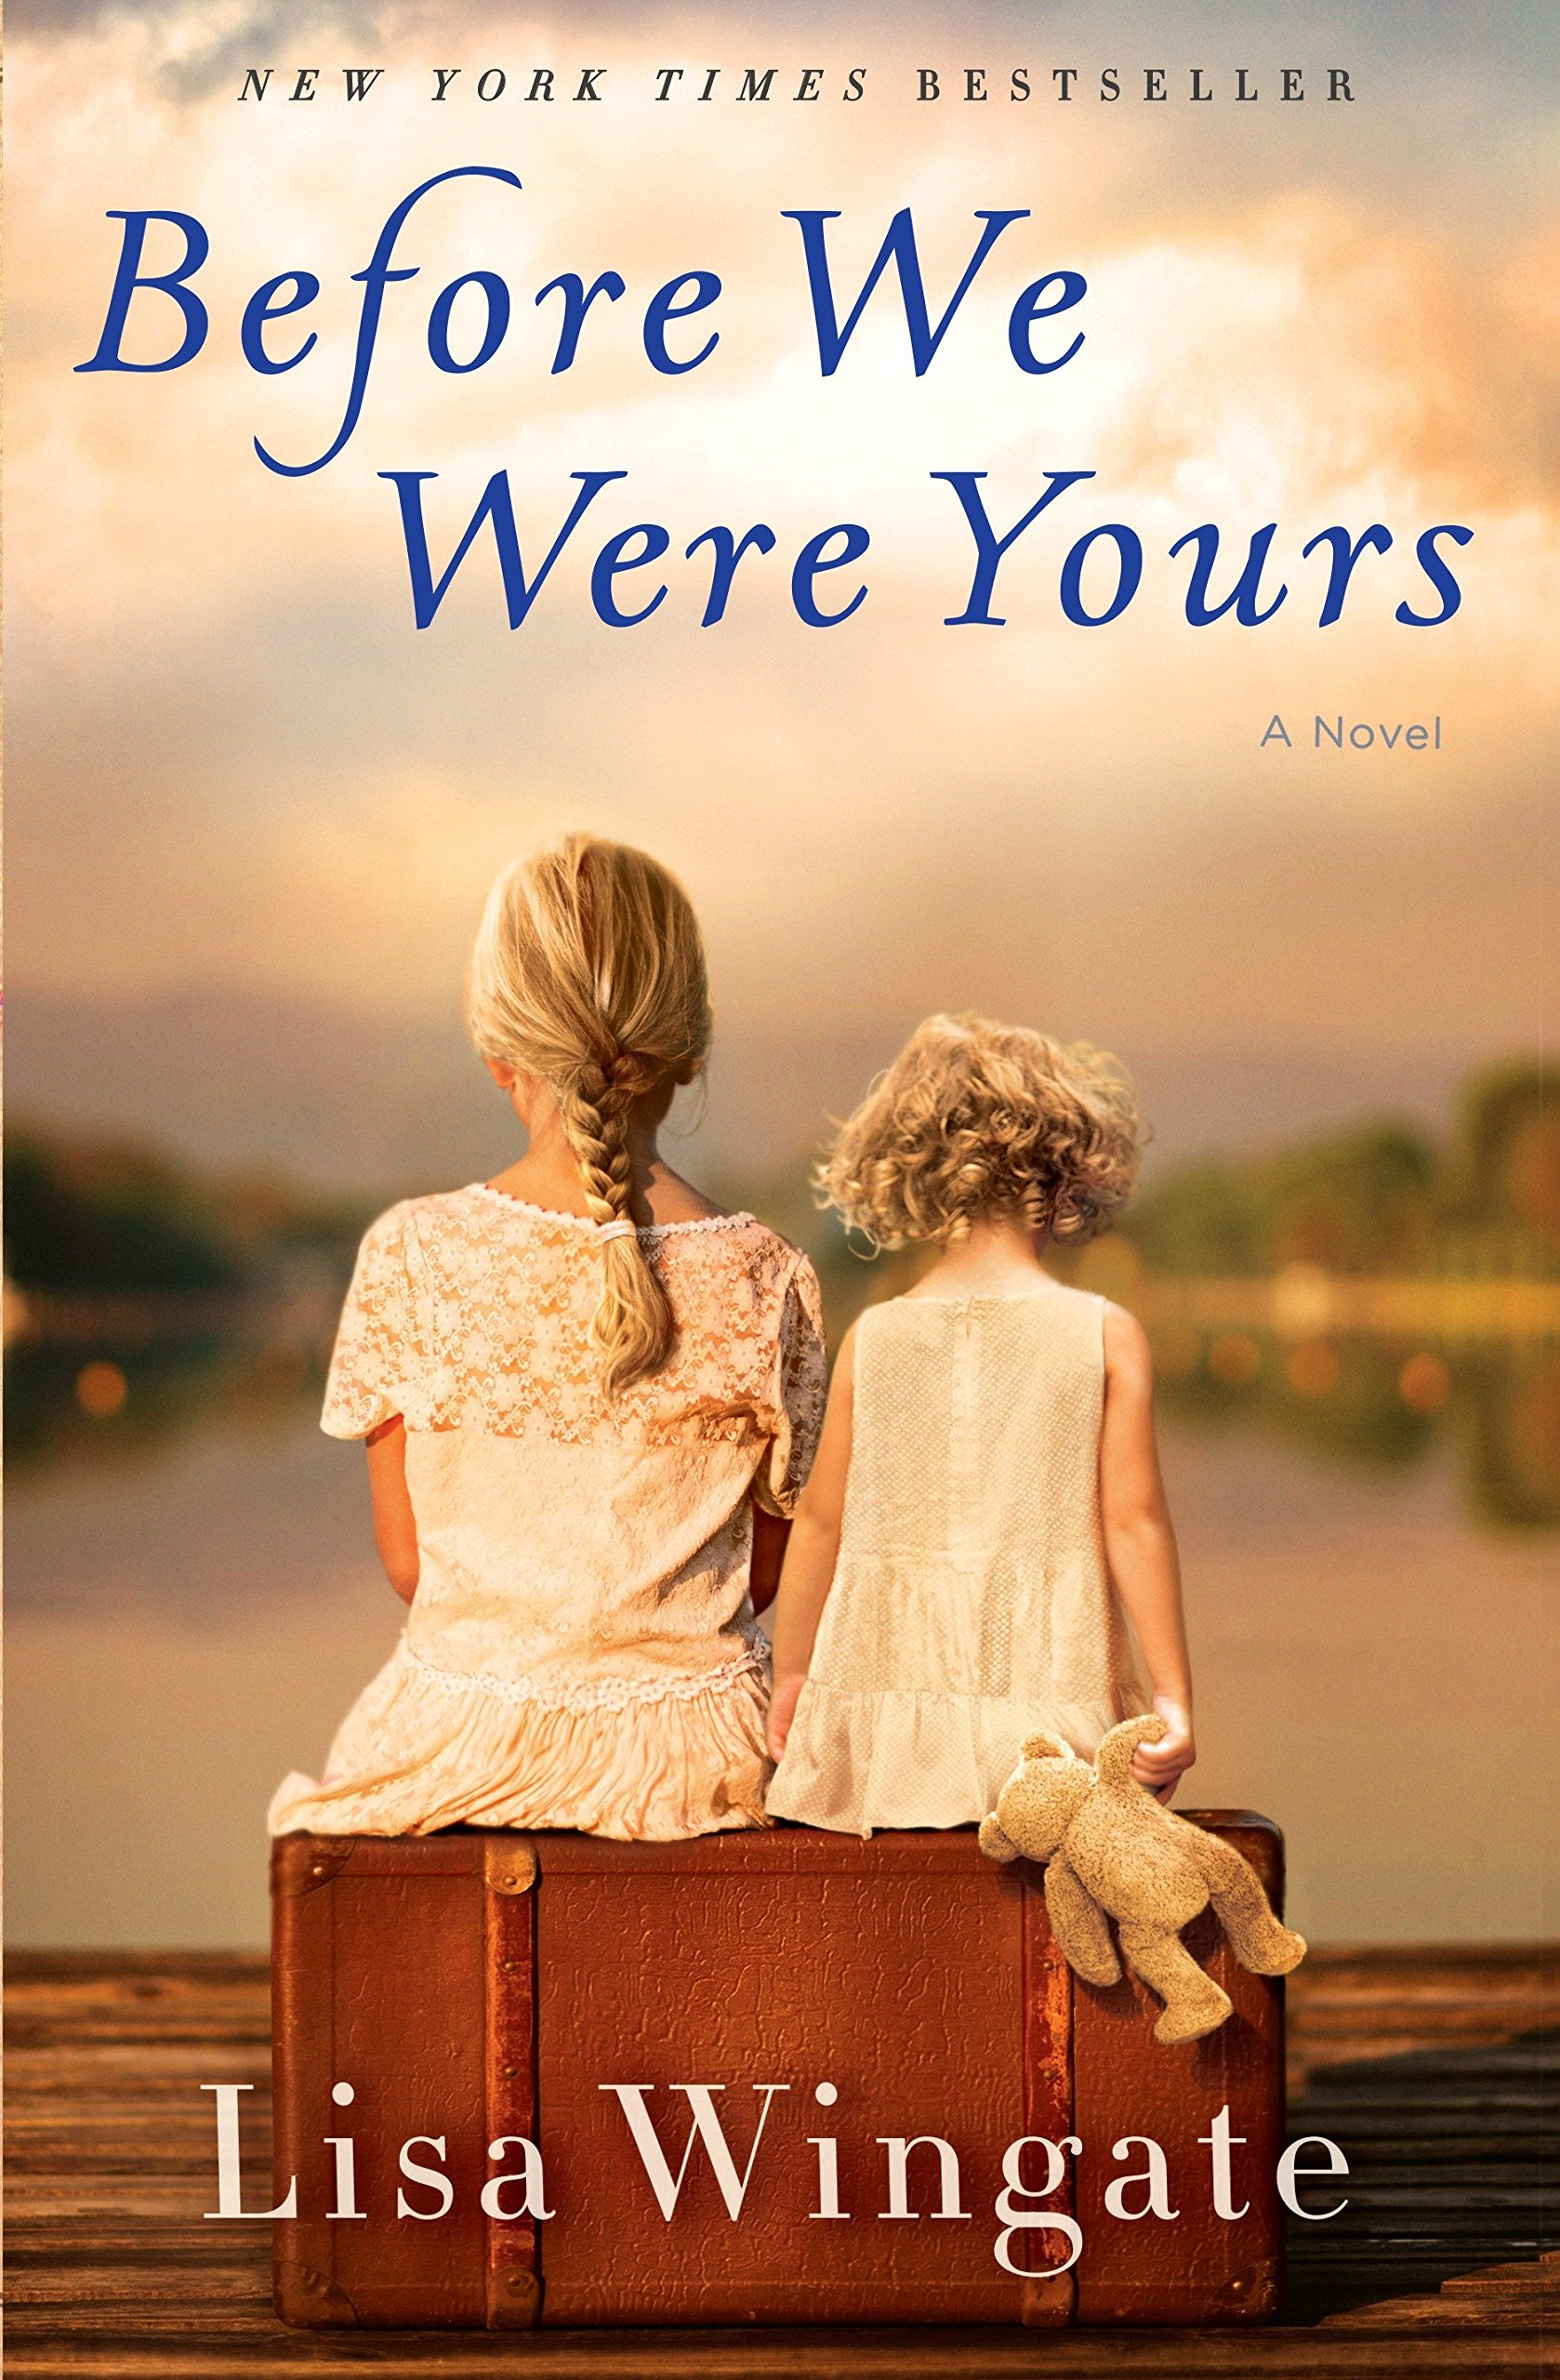 Before We Were Yours by Lisa Wingate novel cover